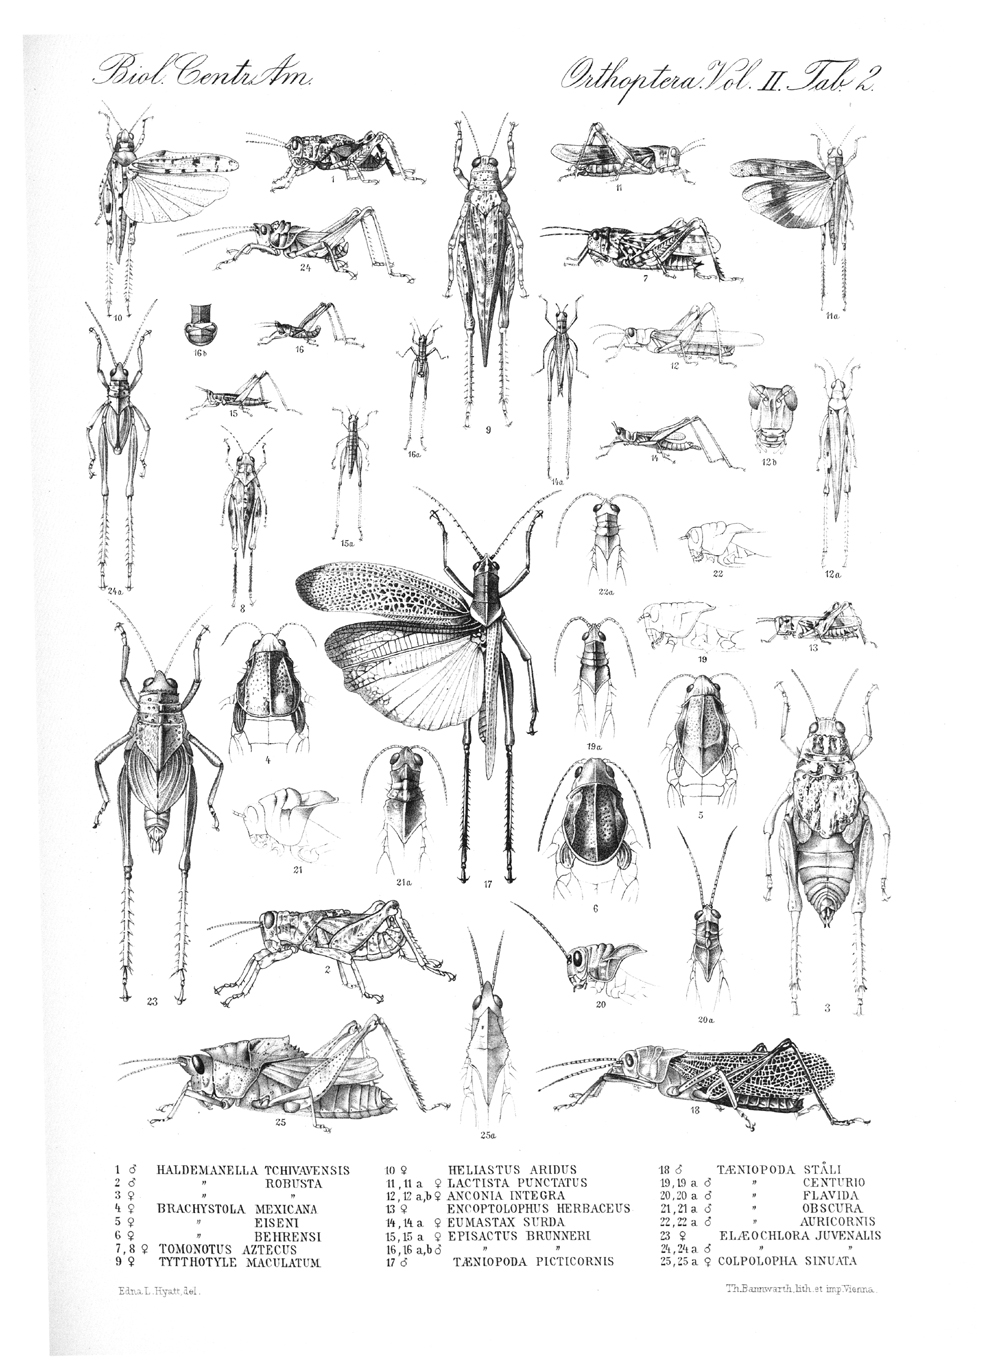 Grasshoppers and Related Insects,  Image number:bca_20_02_00_426